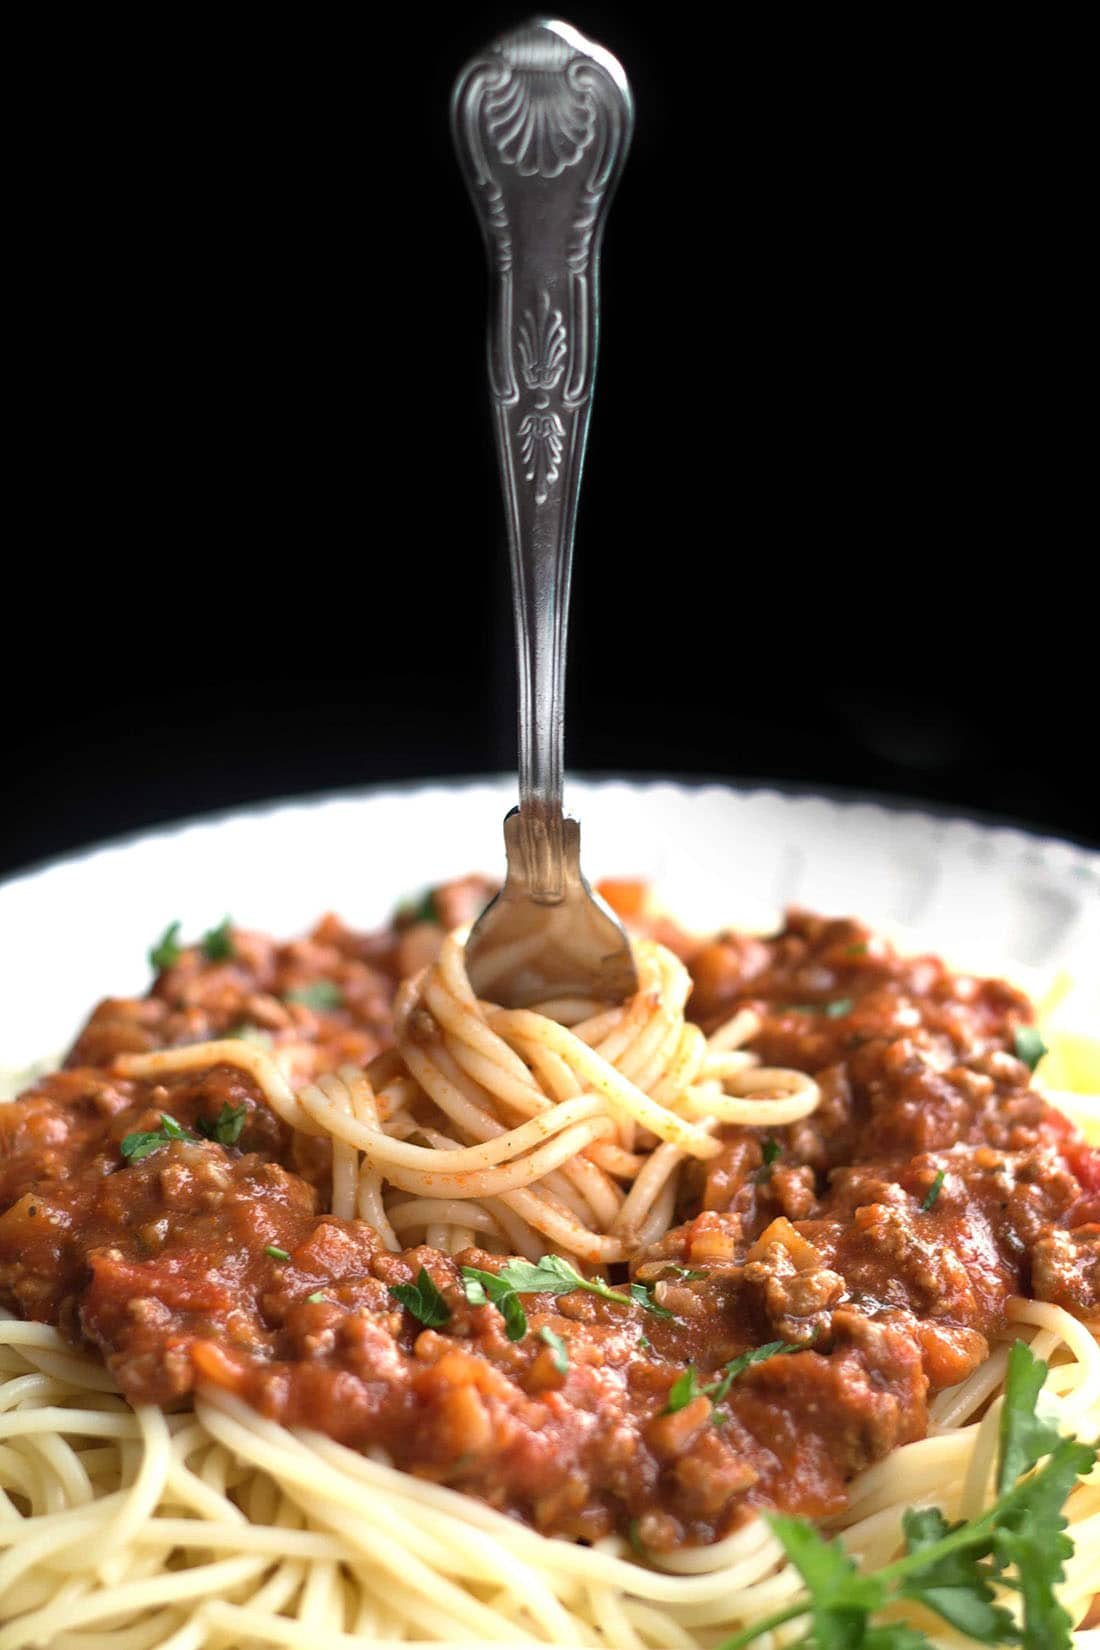 A fork twirling the Quick & Easy Spaghetti Bolognese {Meat Sauce}